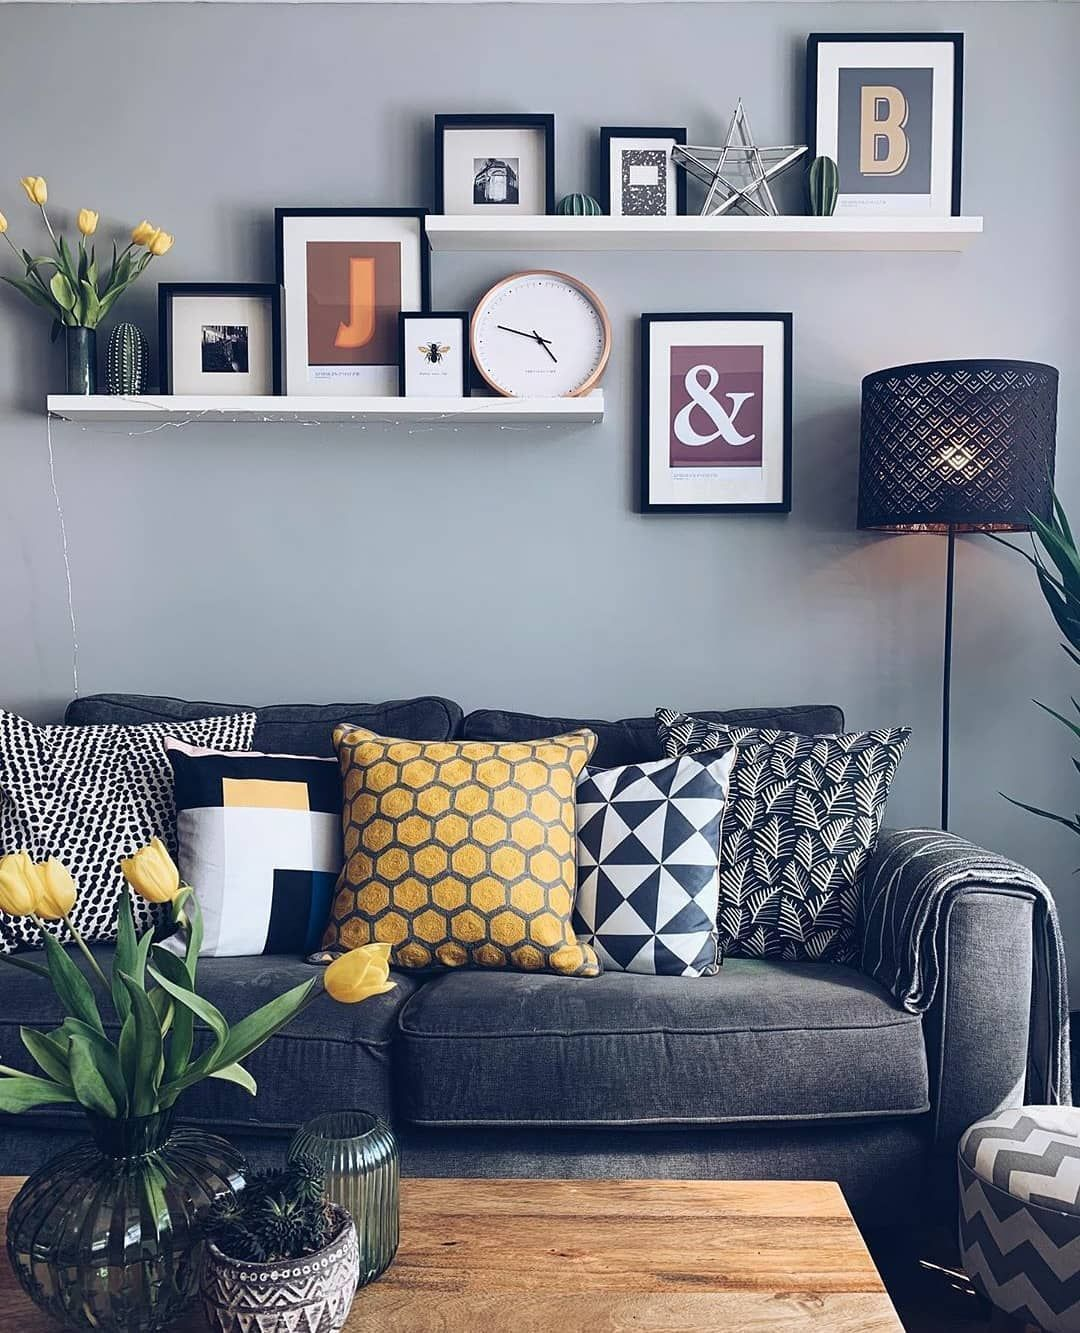 Diy Home By Diego Rodrigues On Instagram Cozy Living Room With Shades Of Gray Black In 2020 Living Room Decor Modern Living Room Colors Living Room Decor Apartment Cool living room colors